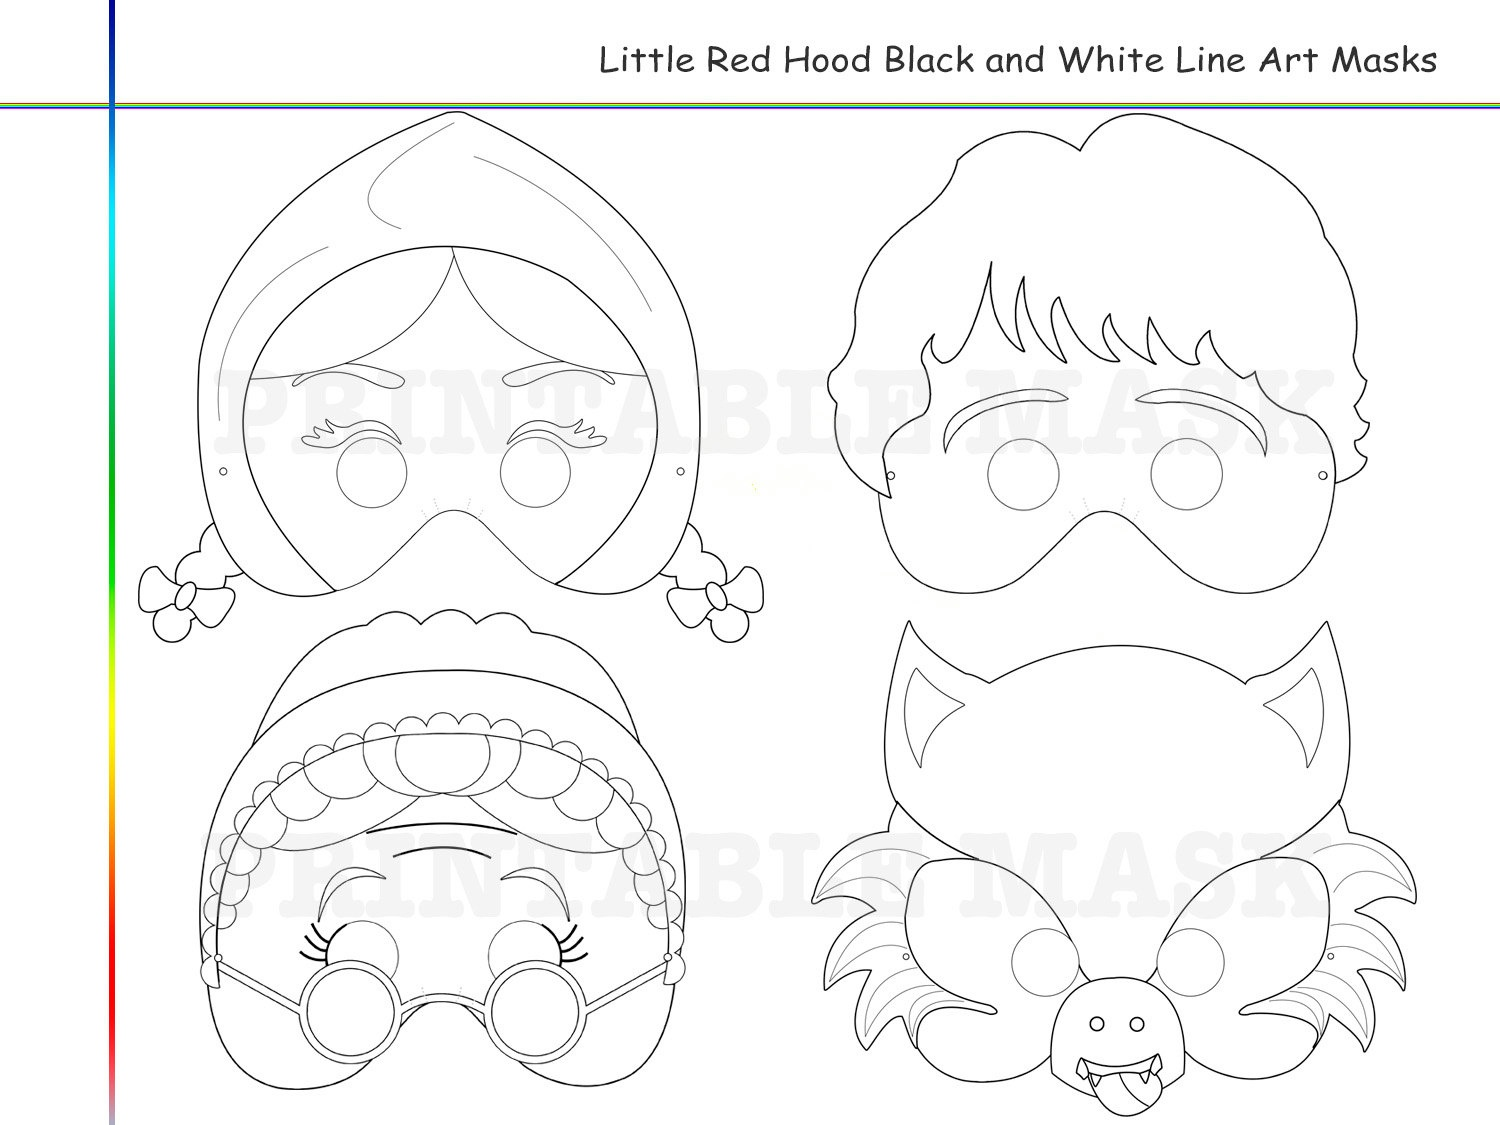 Coloring Pages Little Red Riding Hoodholidaypartystar On Zibbet - Little Red Riding Hood Masks Printable Free